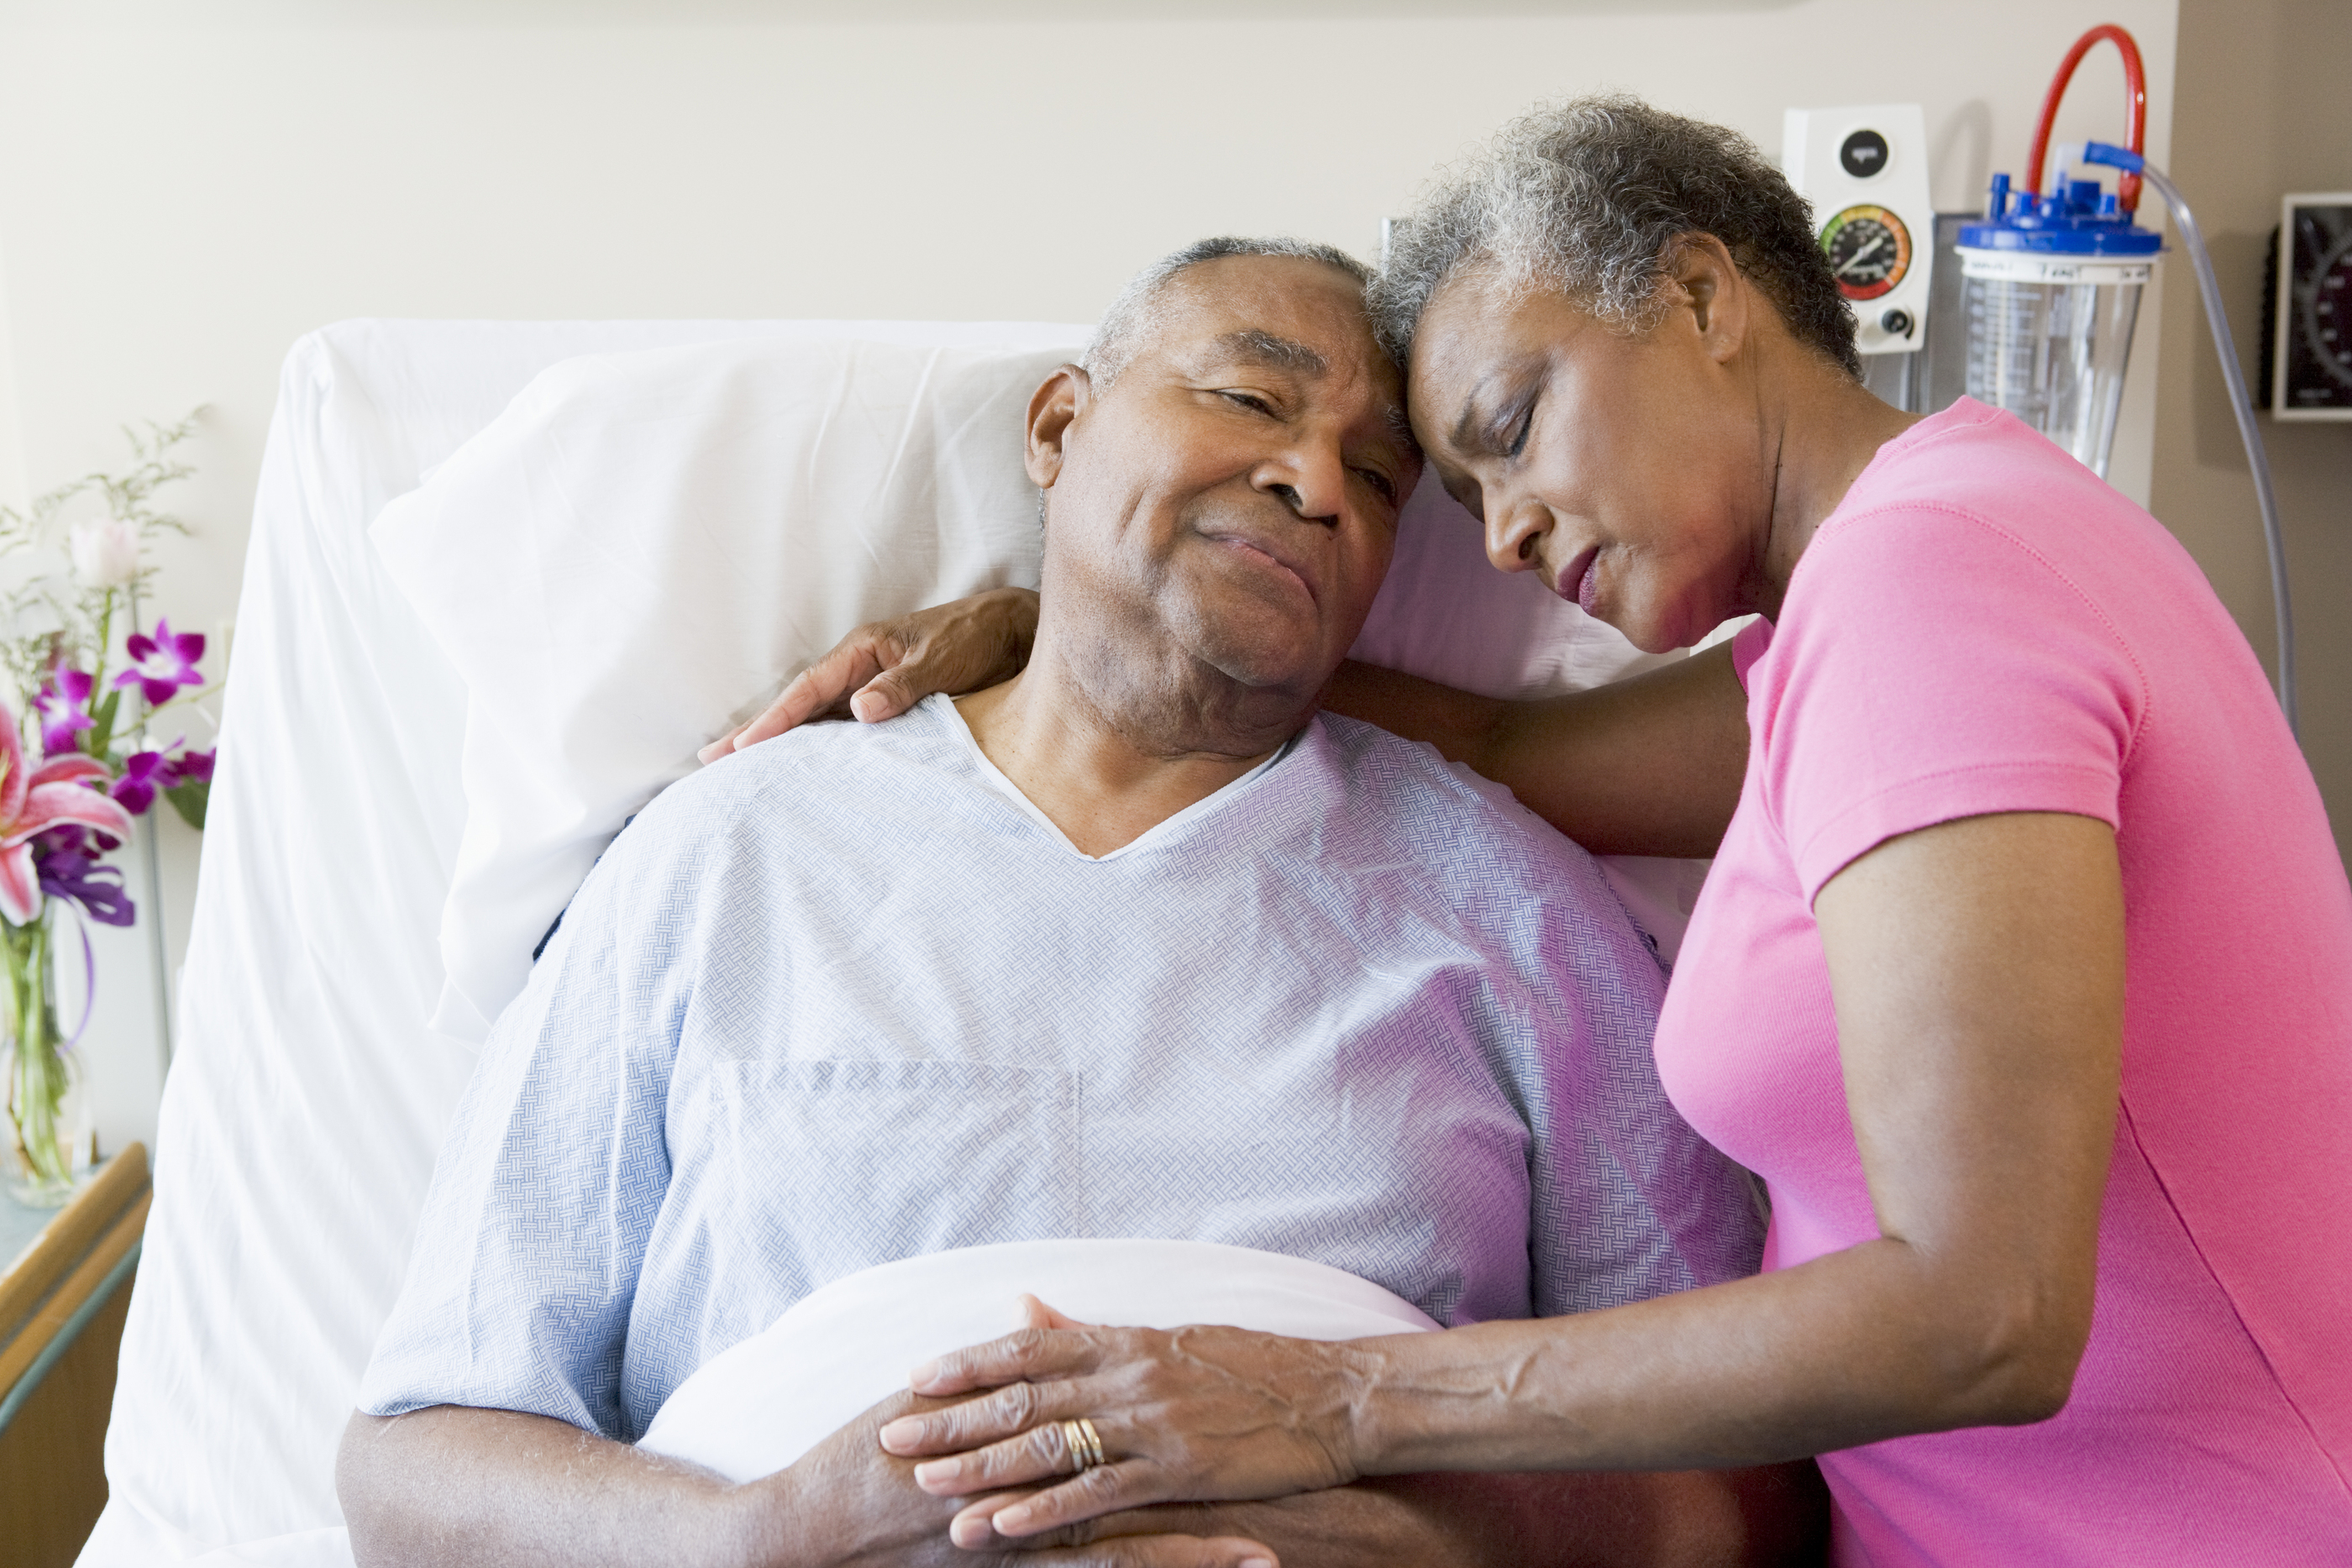 Protect someone you provide care for